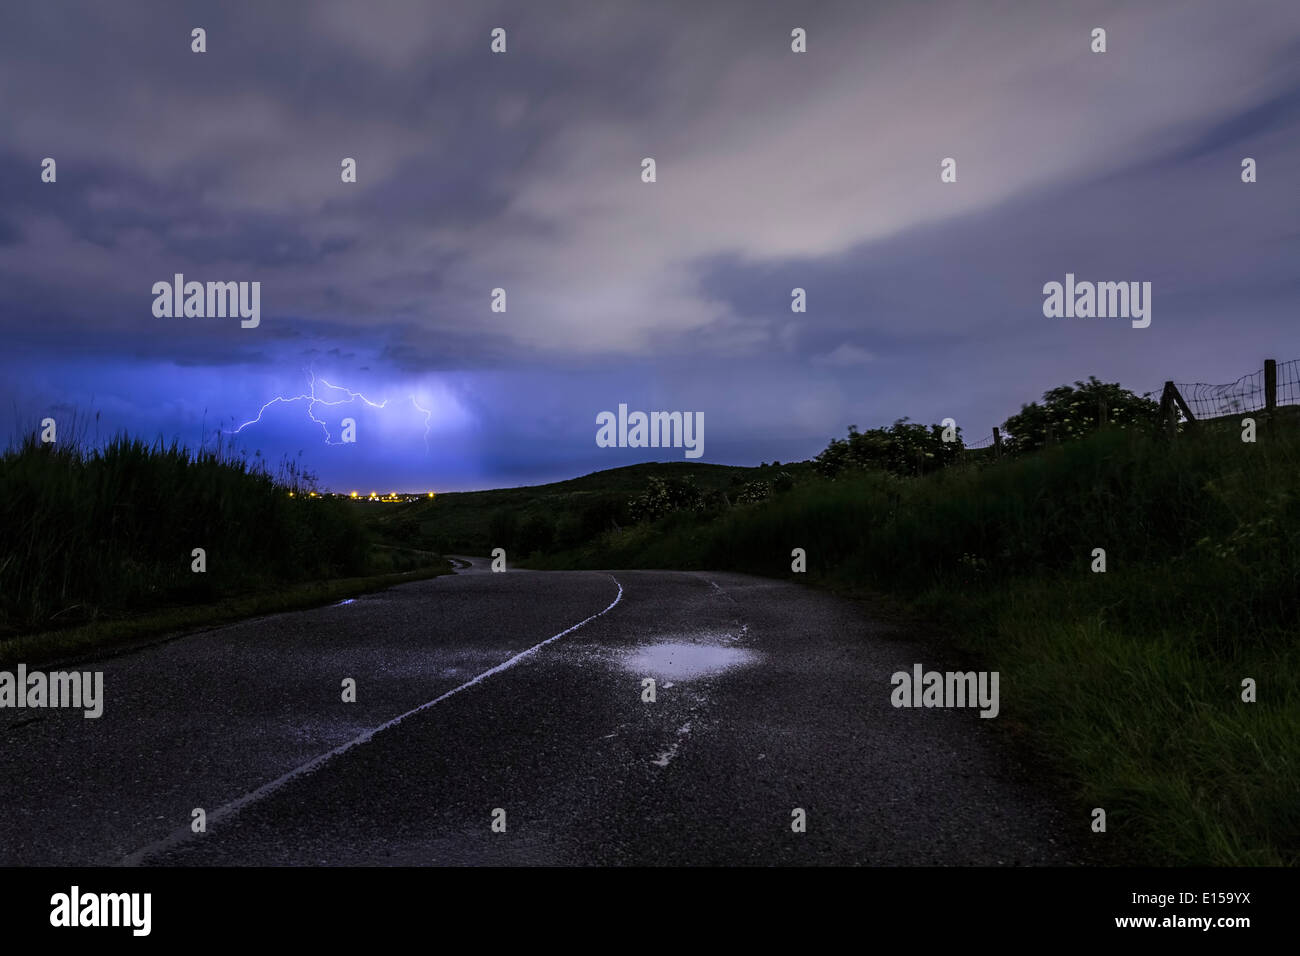 A road leads to a storm raging behind the hills. Stock Photo